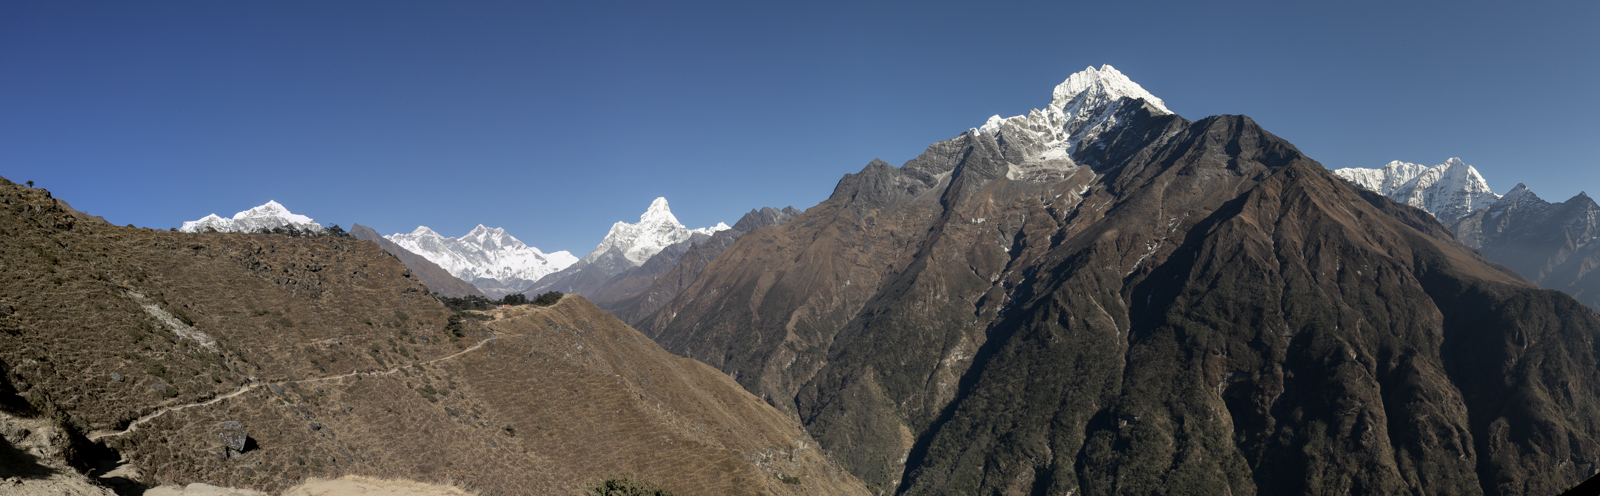 Taboche 6,495 m / 21,309 ft, Mount Everest 8,848 m / 29,029 ft, Lhotse Shar 8,382 m / 27,500 ft, Shartse 7,457 m / 24,465 ft, Ama Dablam 6,856 m / 22,493 ft, Thamserku 6,623 m / 21,729 ft, Kusum Kangguru 6,367 / 20,889 ft. (PeakFinder)